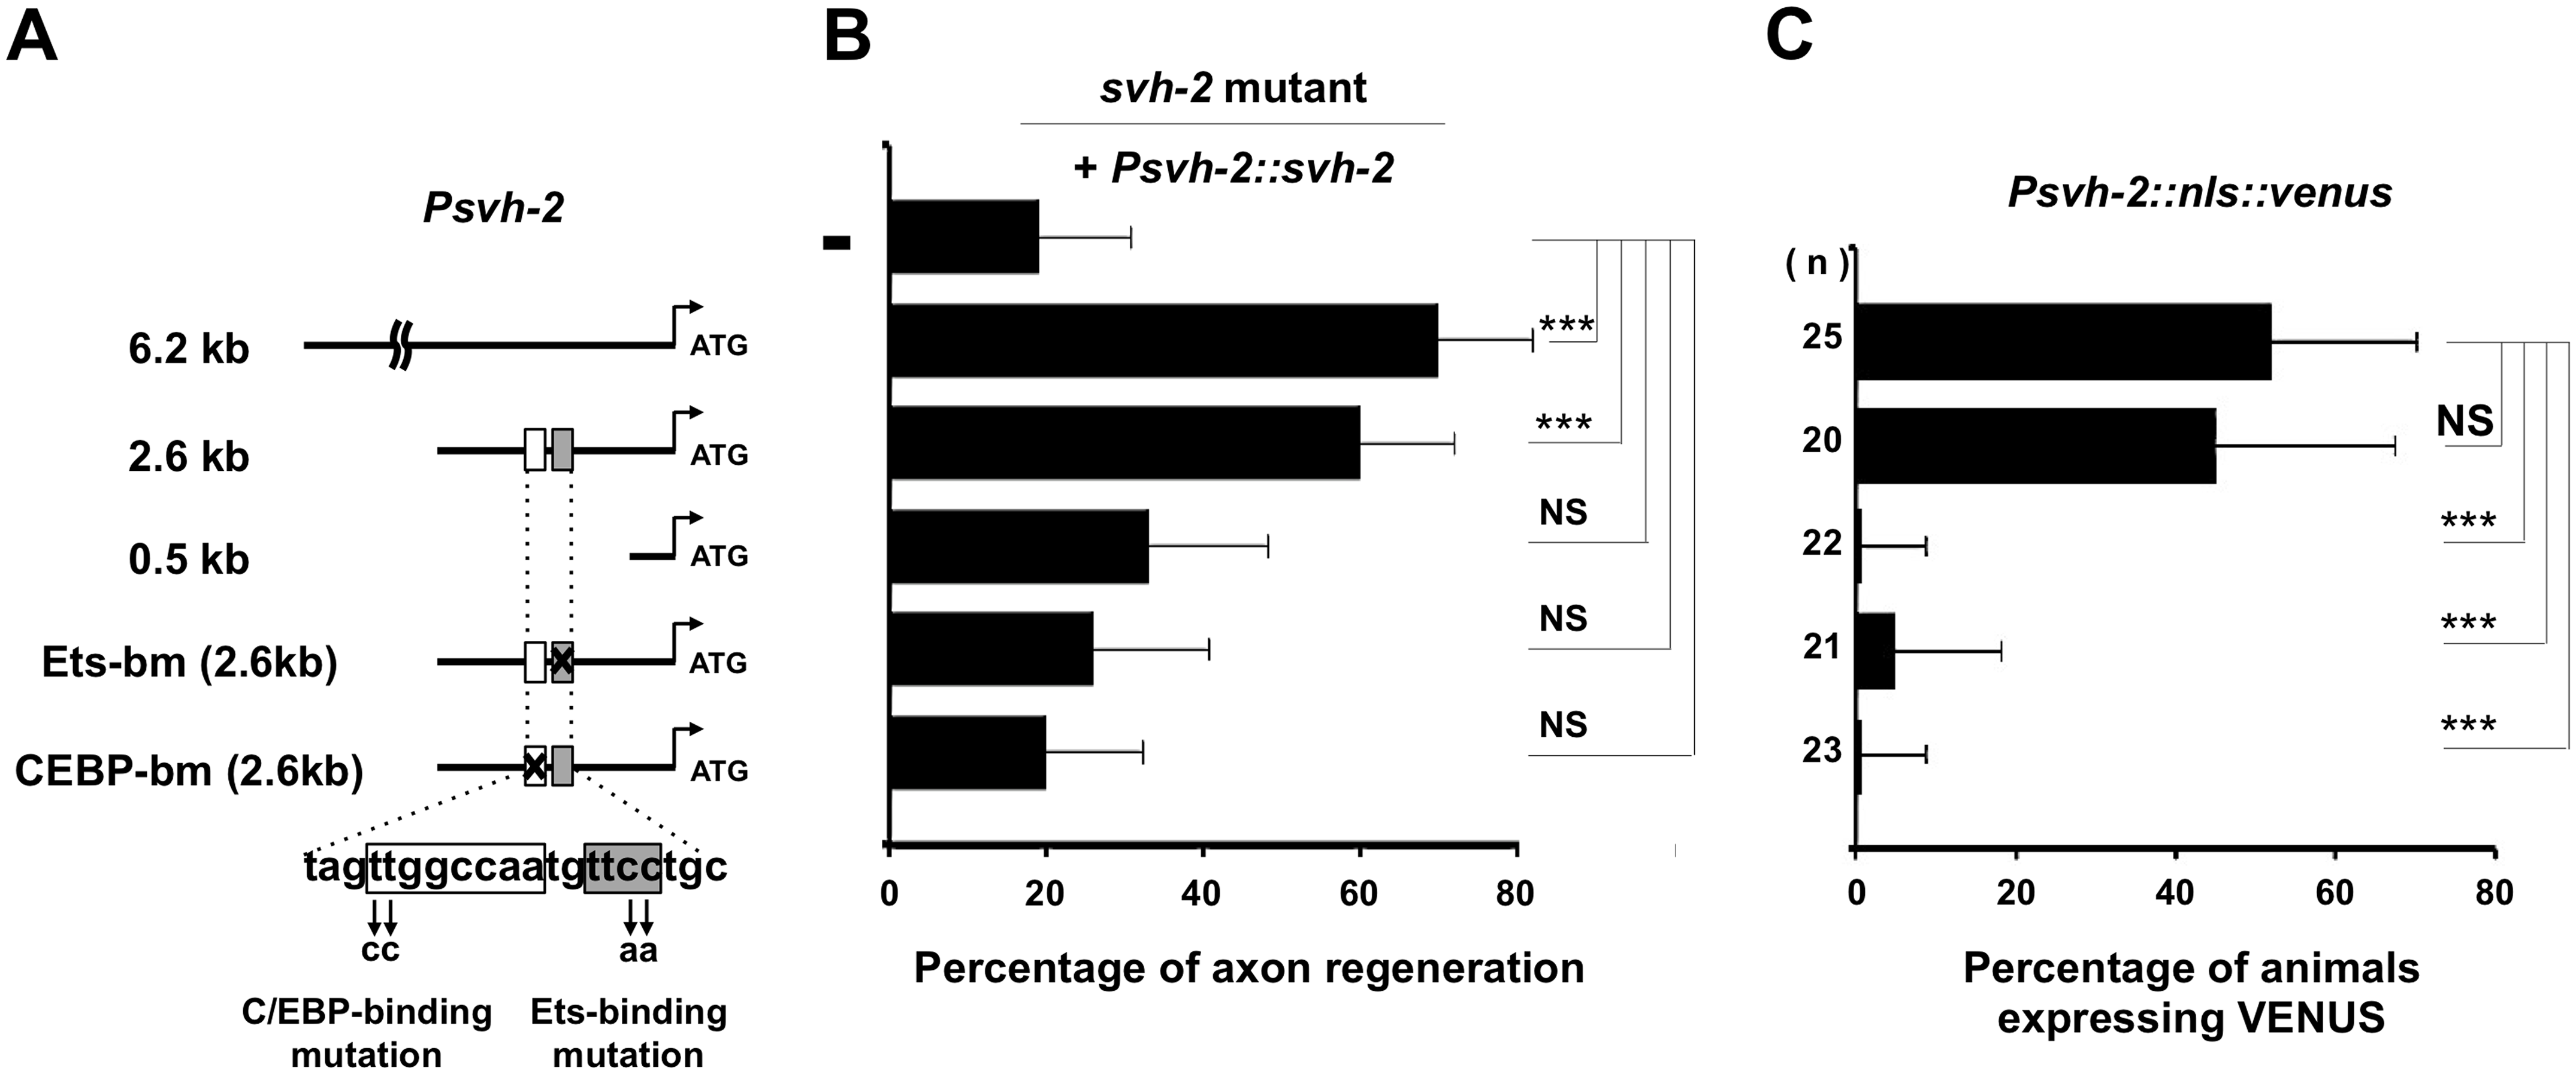 Promoter analysis of the <i>svh-2</i> gene.